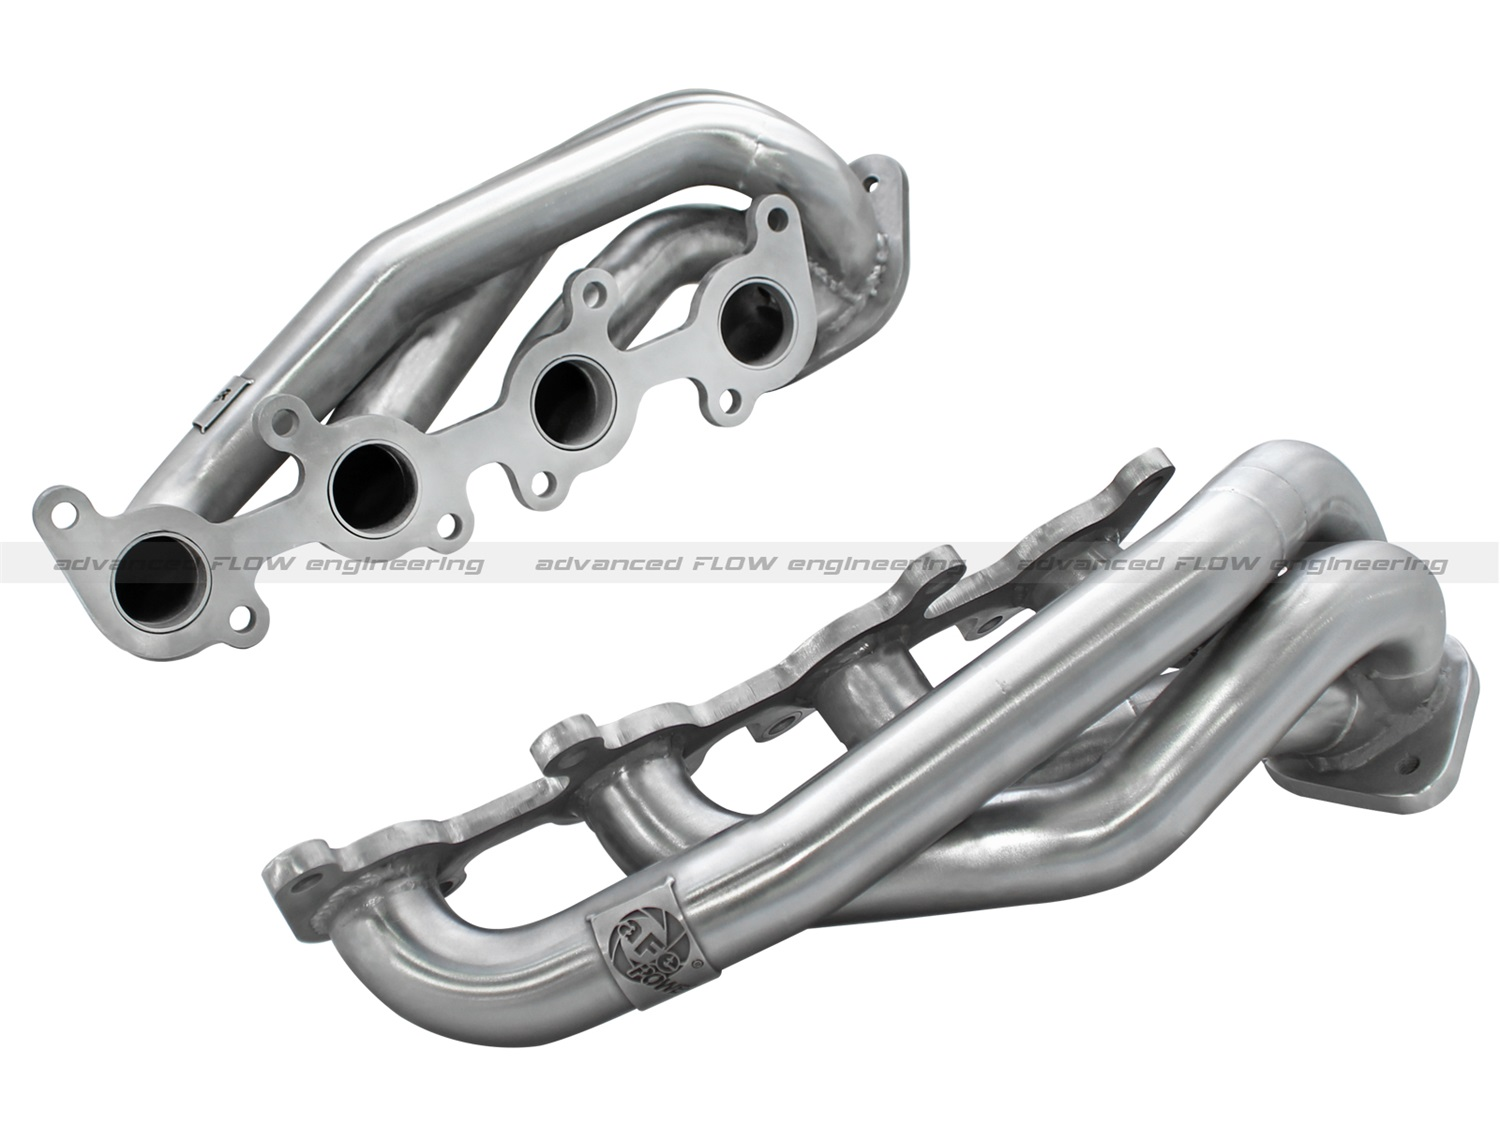 AFE Filters Power 48-43001 Twisted Steel Header  1 5/8 in. 14 Gauge 409 Stainless Steel Tubing  3/8 in. Thick Head Flange  Merged Collector at Sears.com